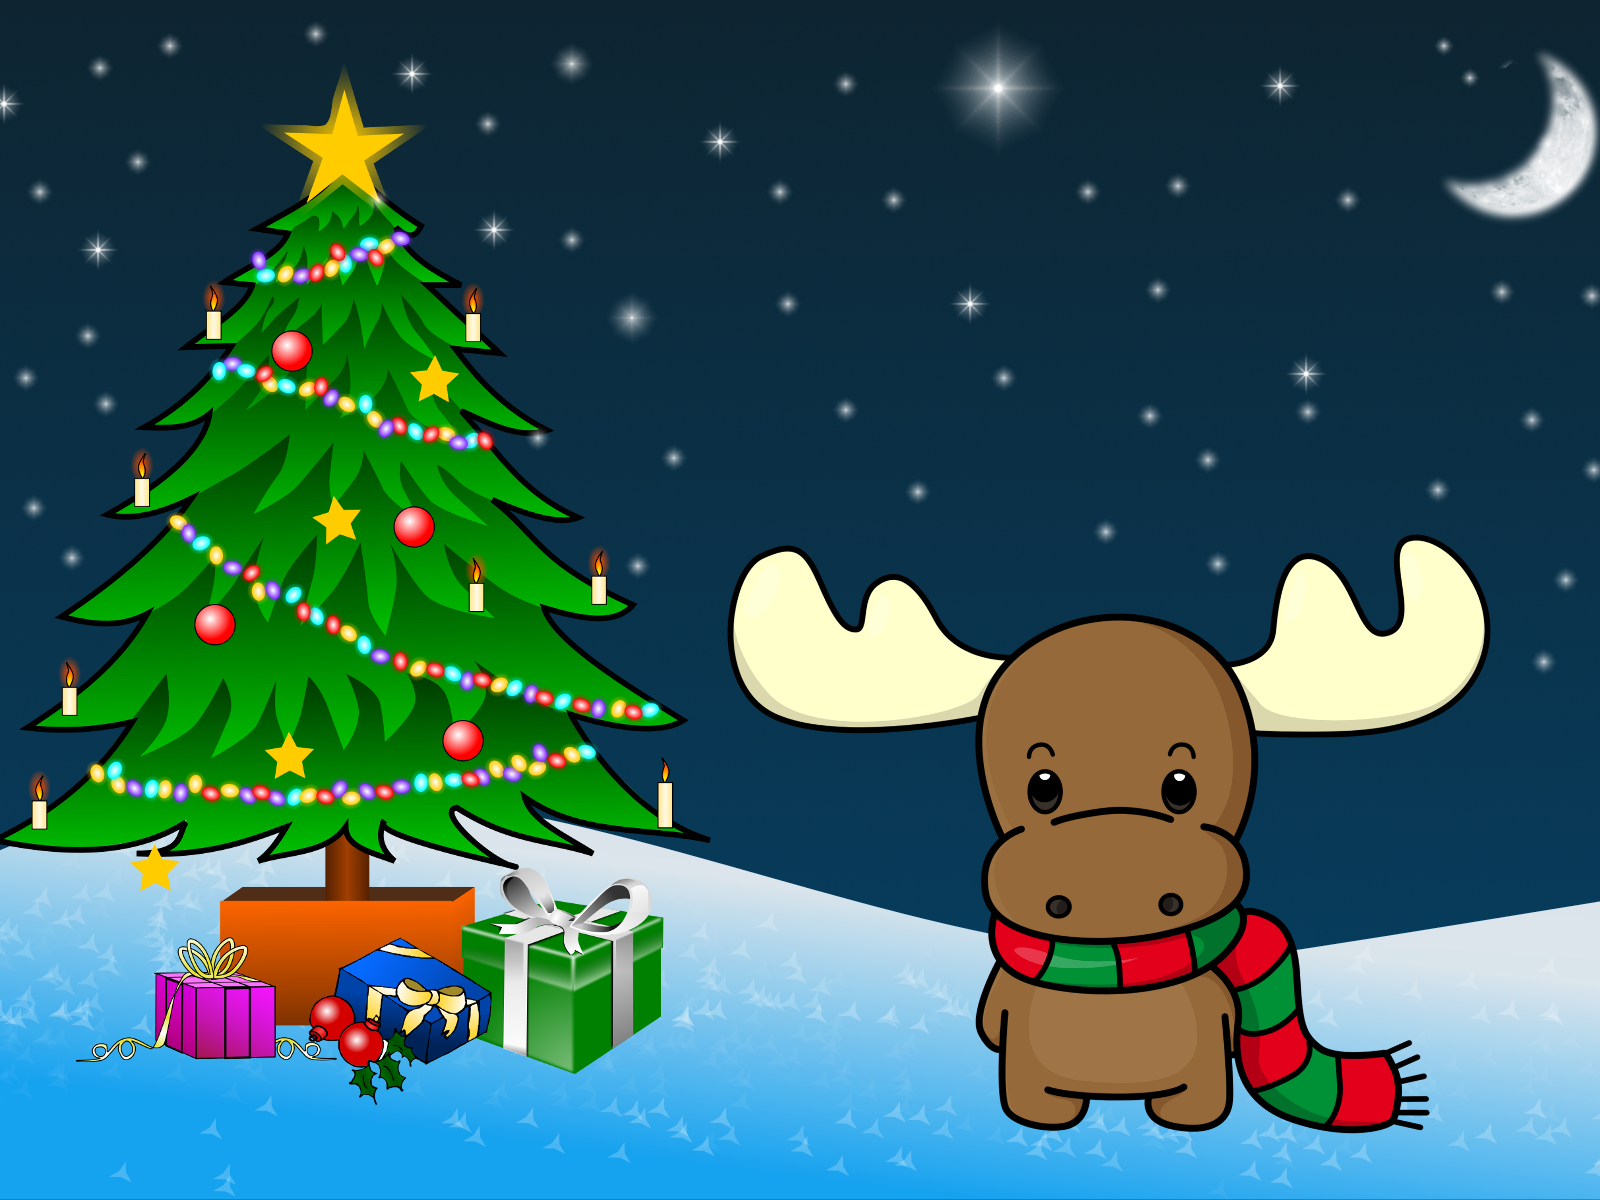 Christmas wallpaper 2014